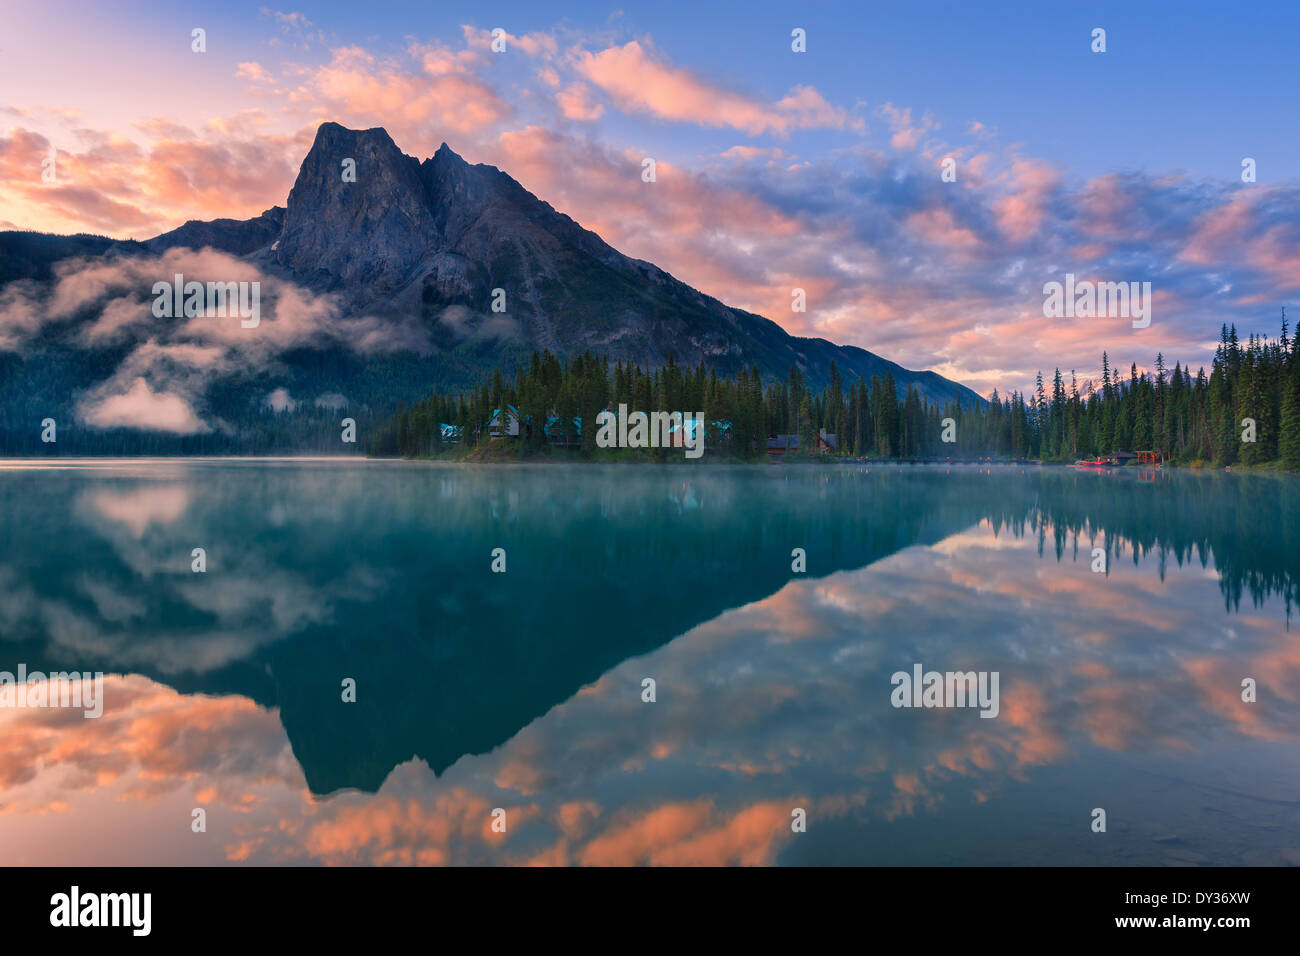 Sunrise Emerald Lake im Yoho Nationalpark, Britisch-Kolumbien, Kanada Stockfoto